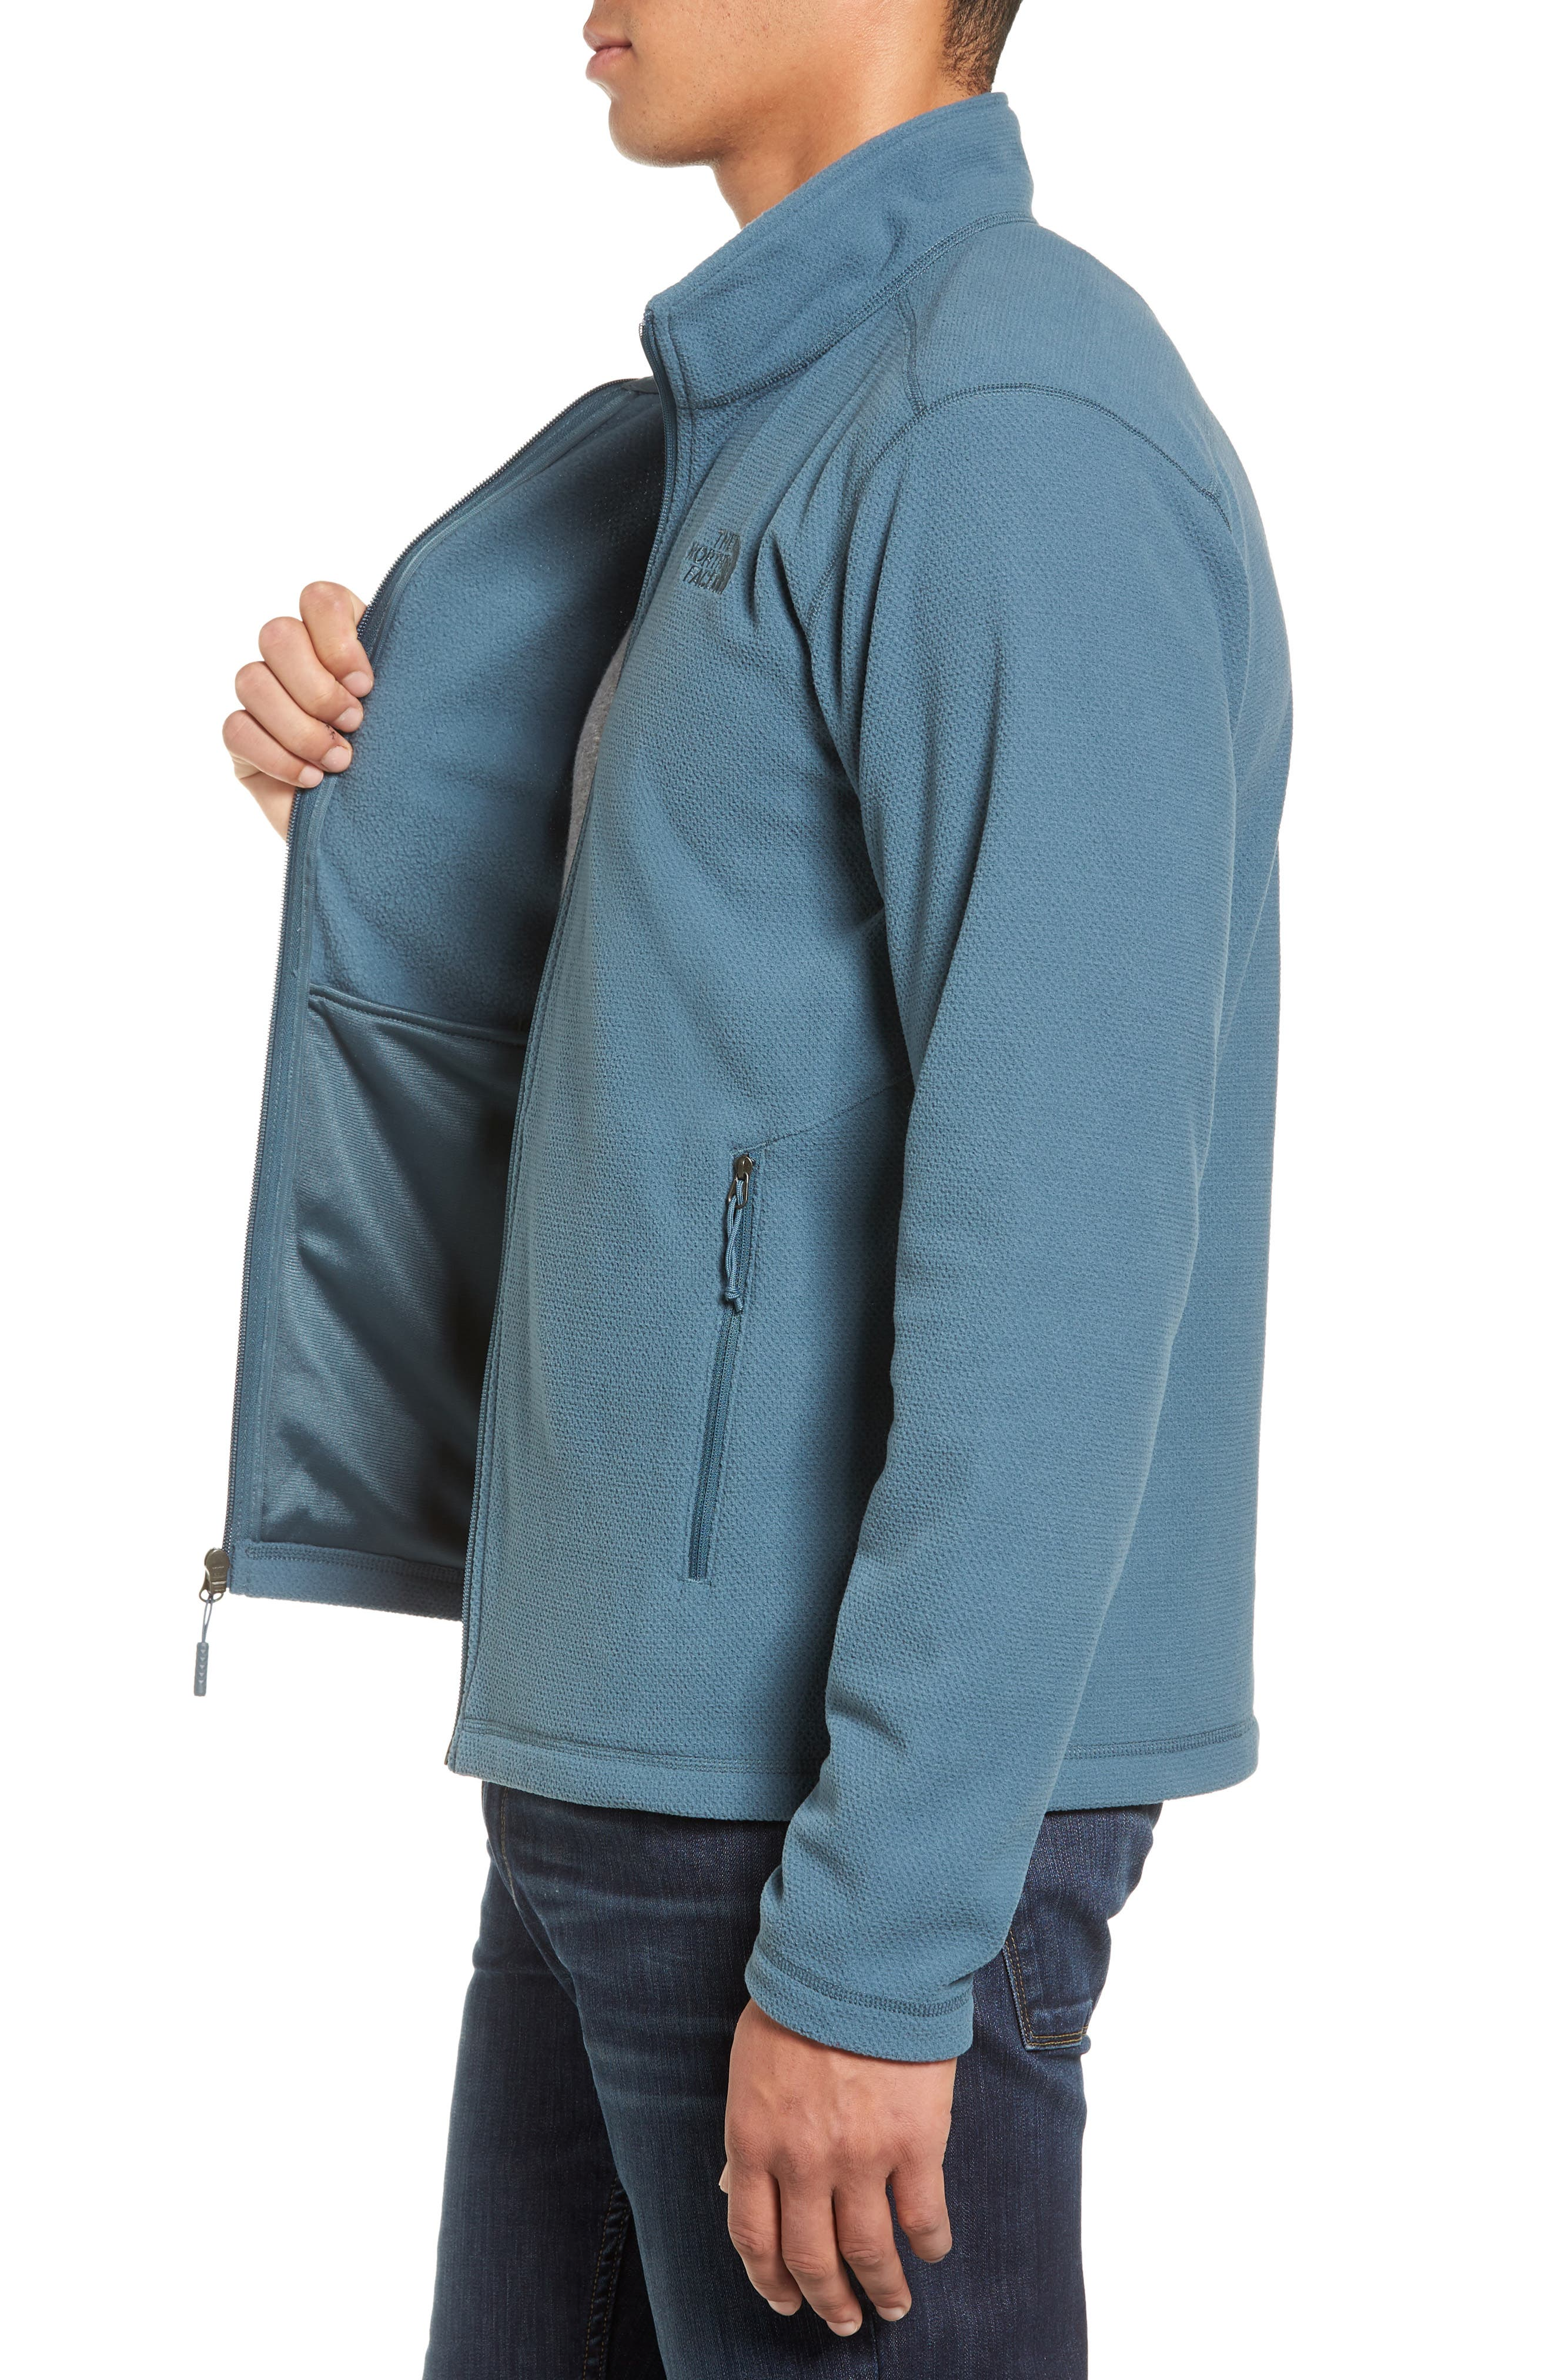 Cap Rock Fleece Jacket,                             Alternate thumbnail 3, color,                             Conquer Blue